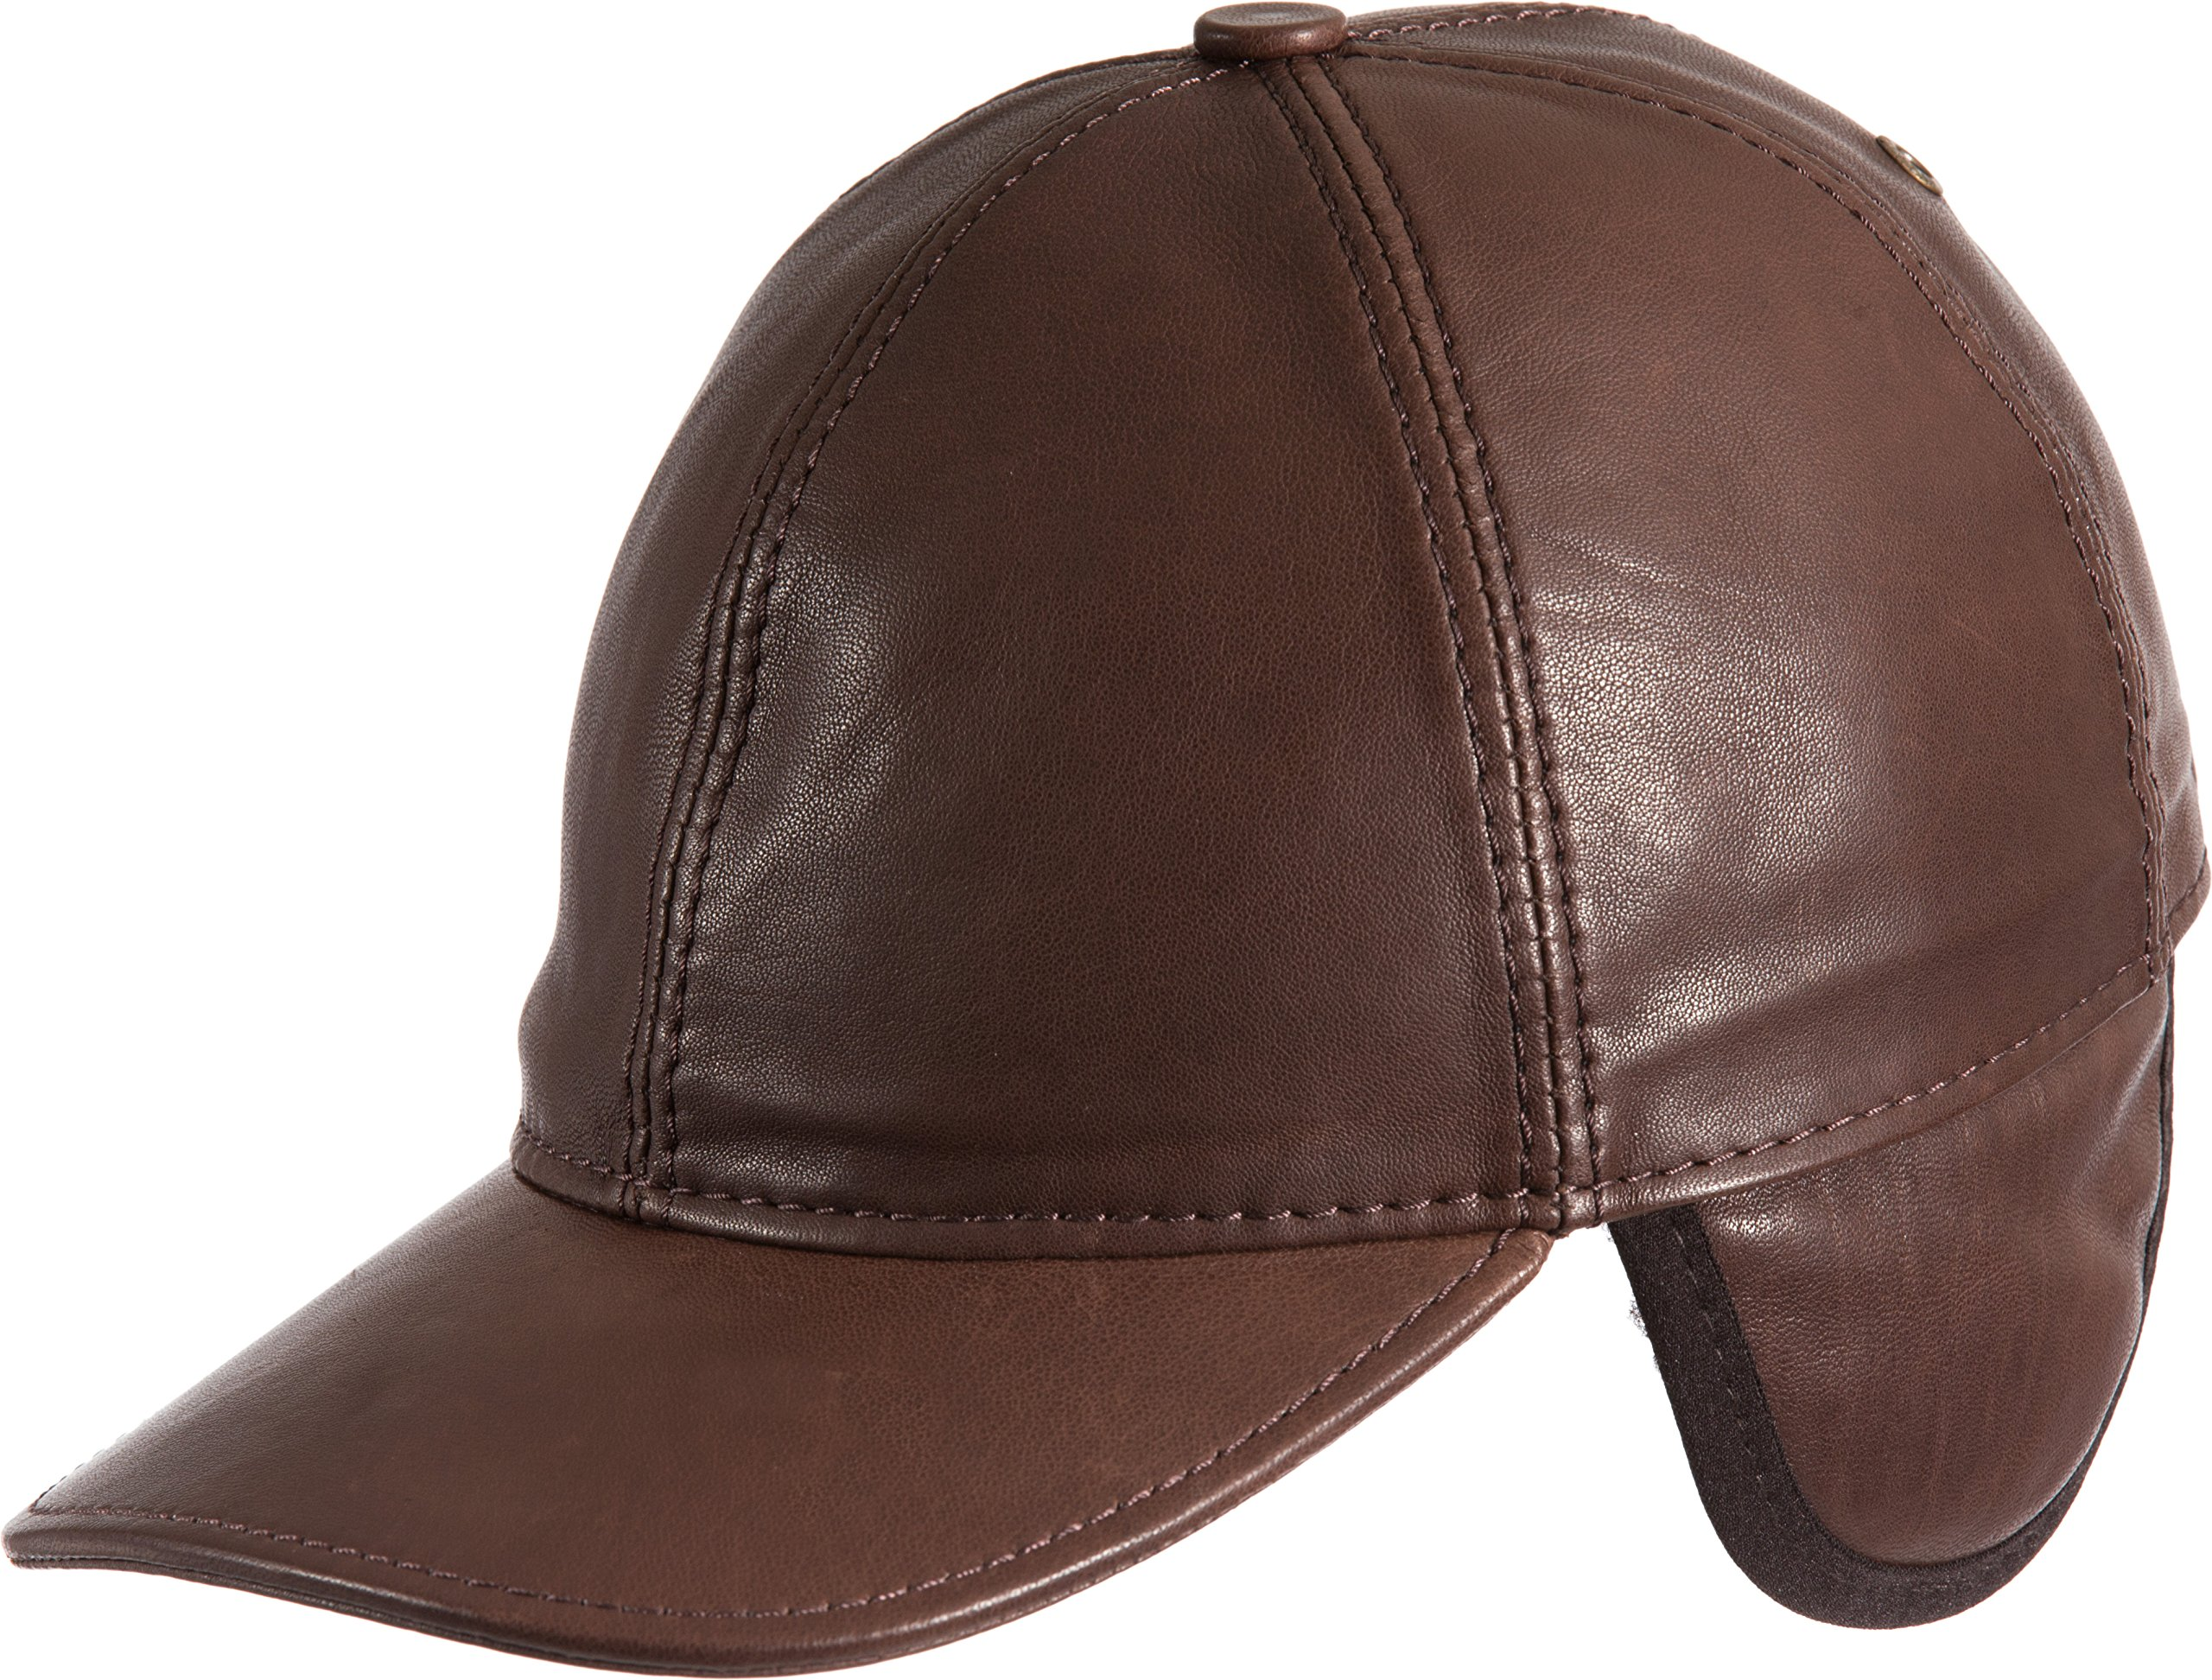 Overland Sheepskin Co Shearling-Lined Spanish Lambskin Leather Baseball Cap